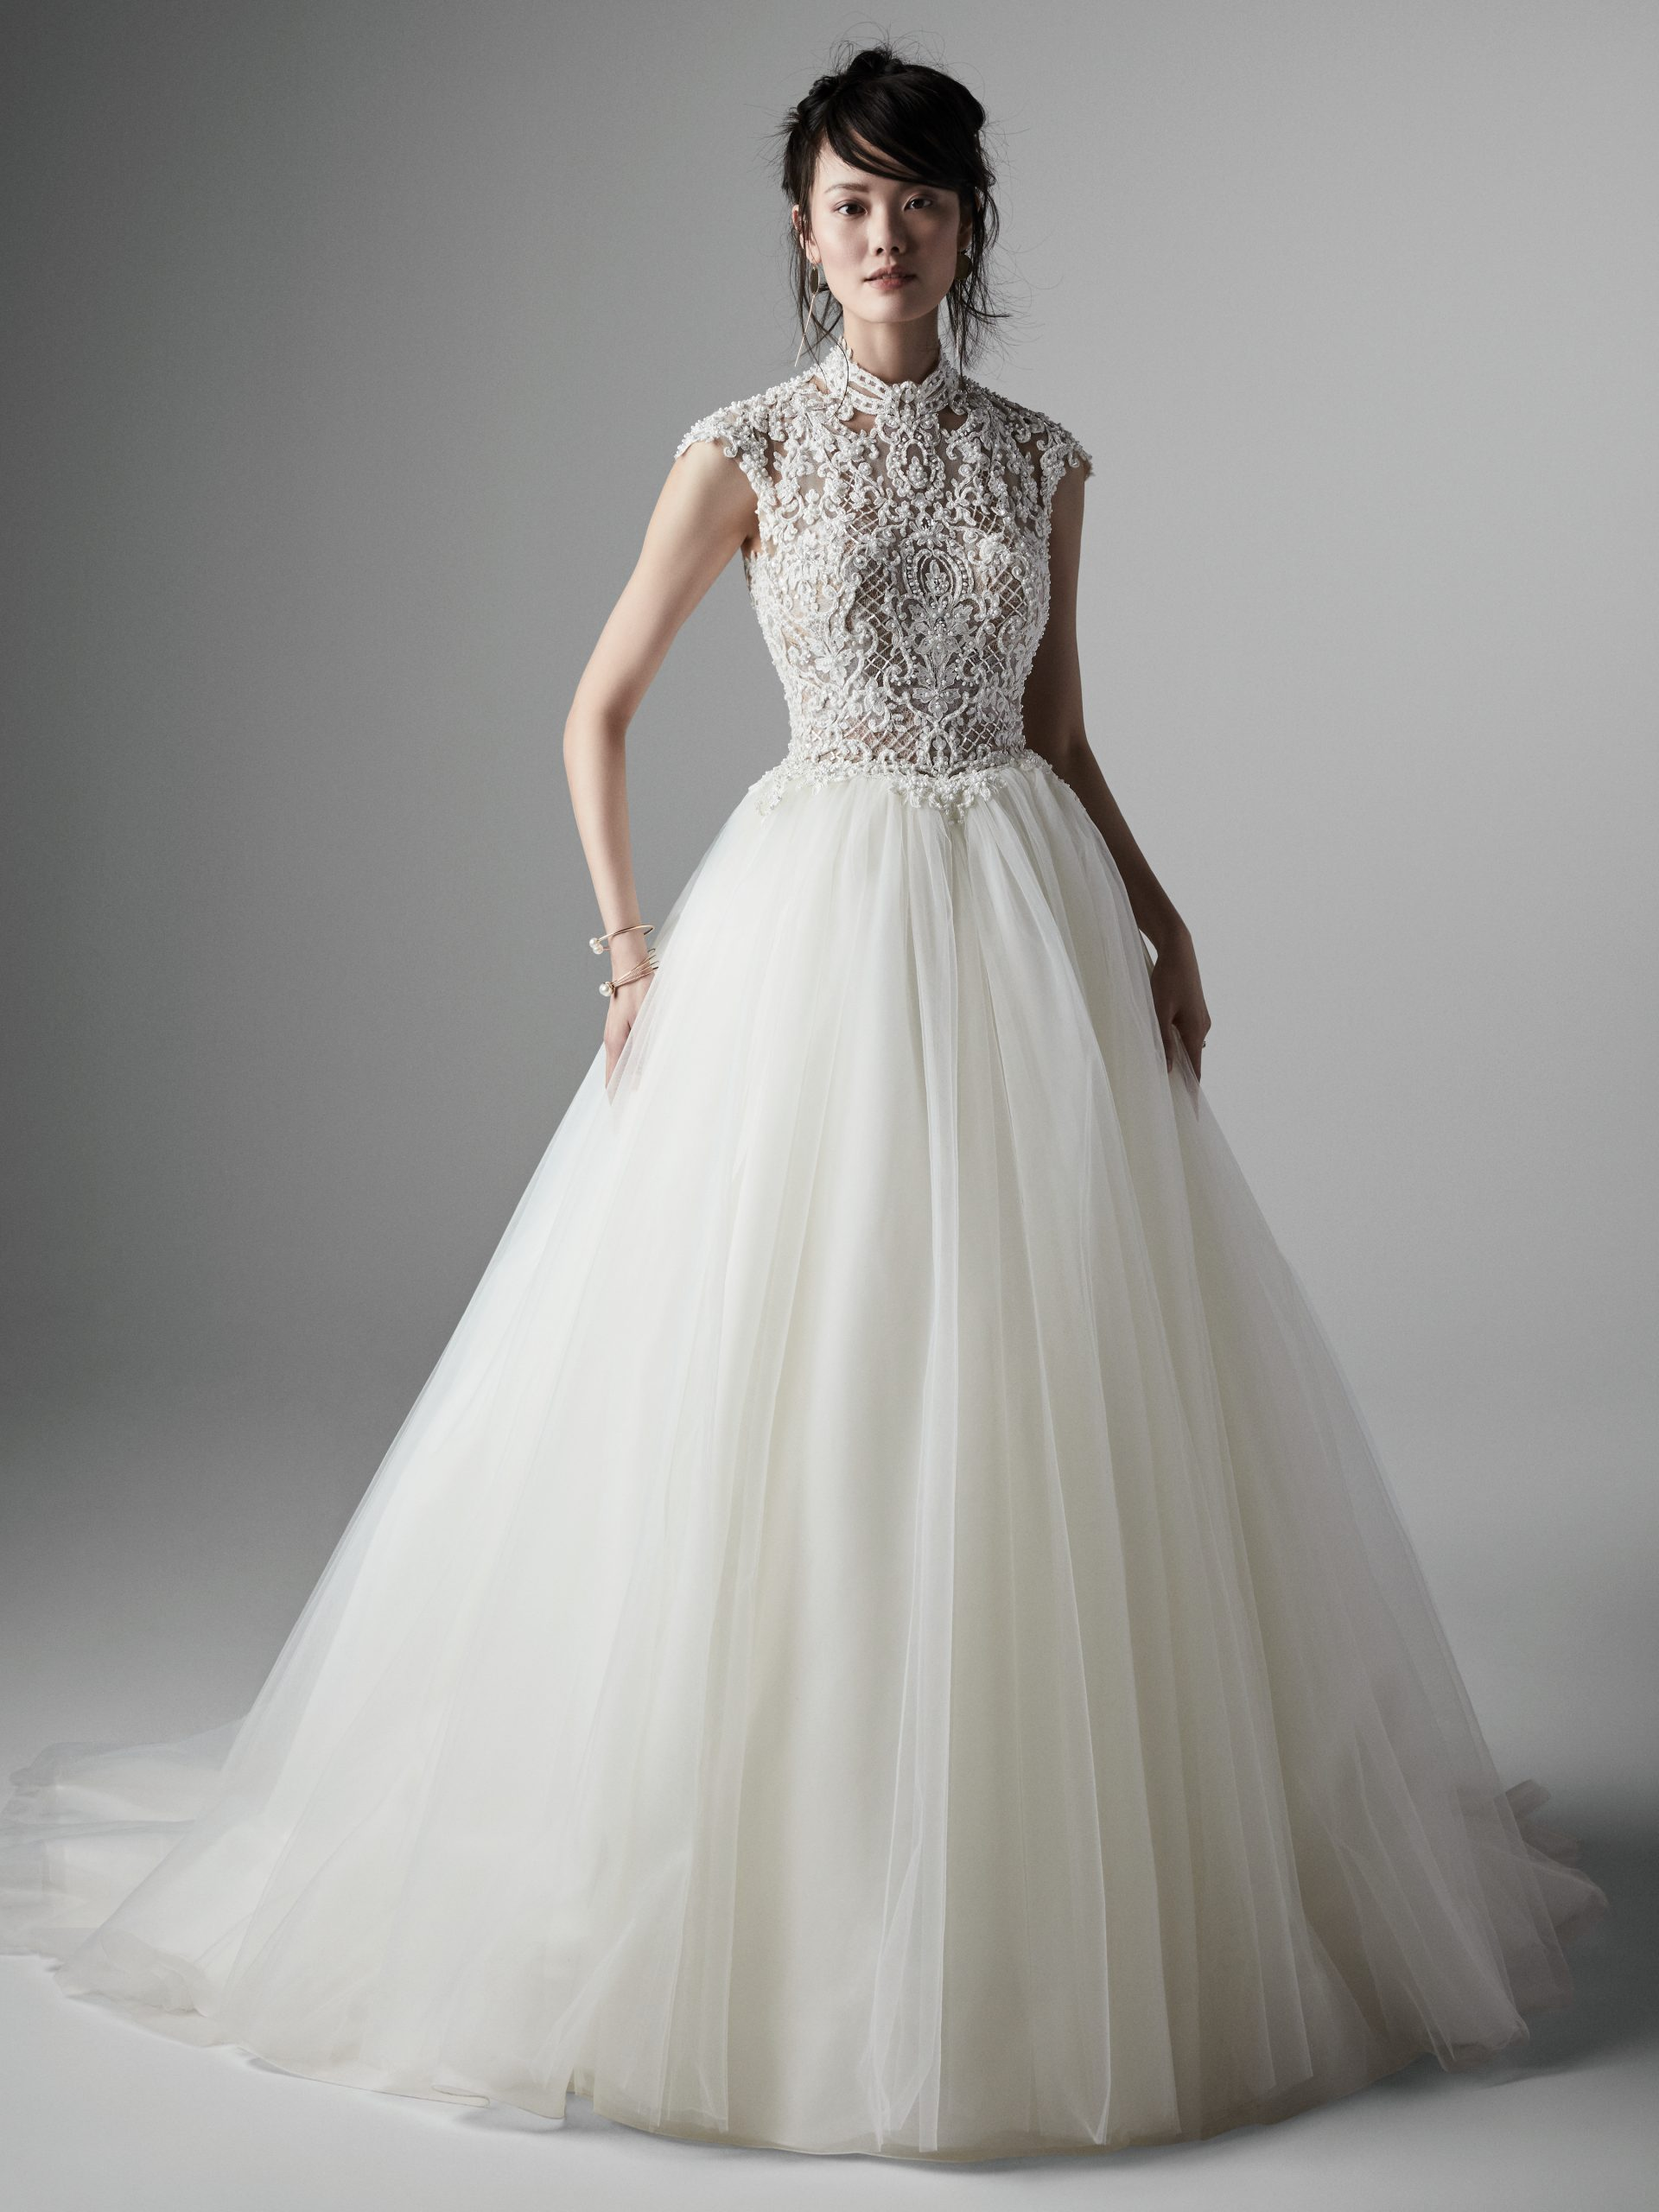 Ball Gown Wedding Dress with Keyhole Back Called Zinnia Lane by Sottero and Midgley